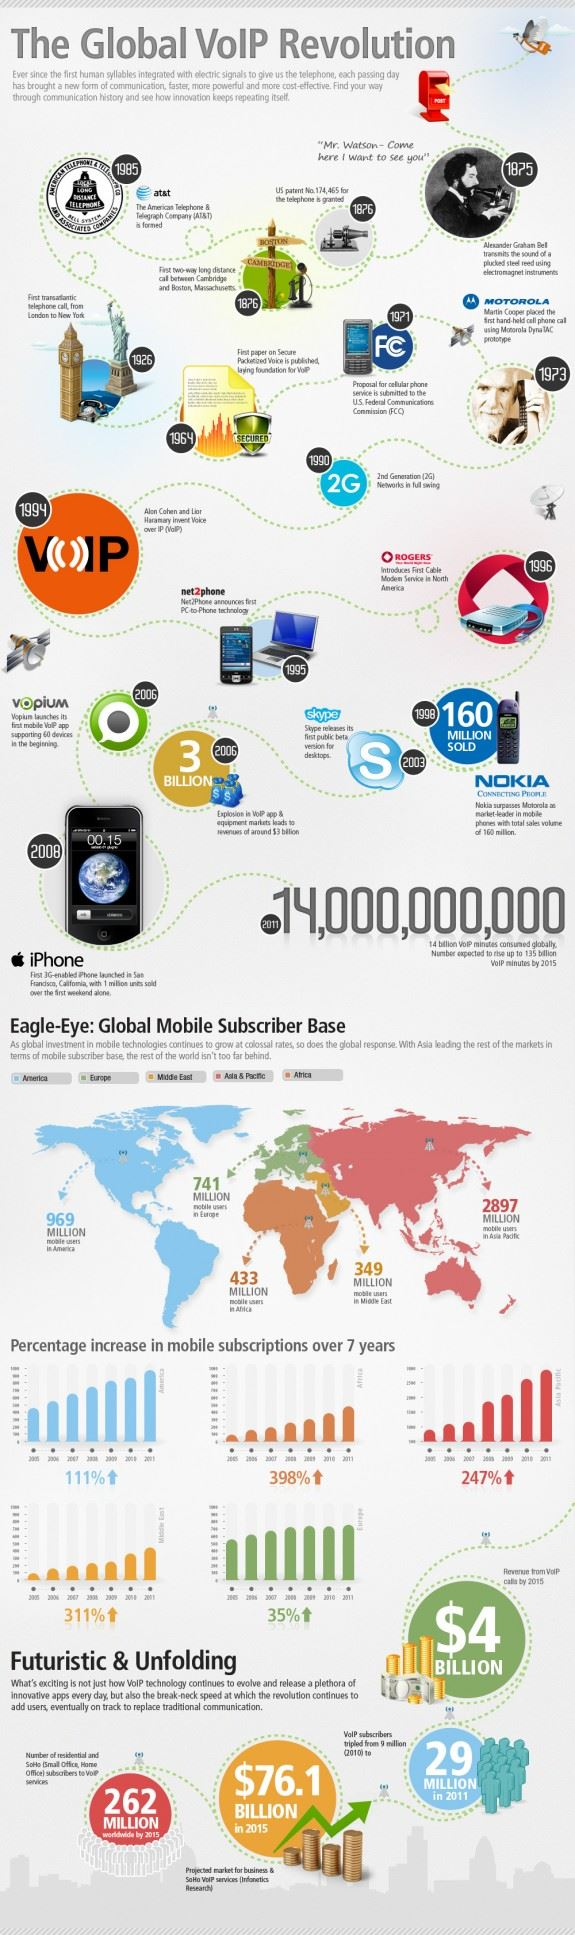 INFOGRAPHIC: The Global VoIP Revolution